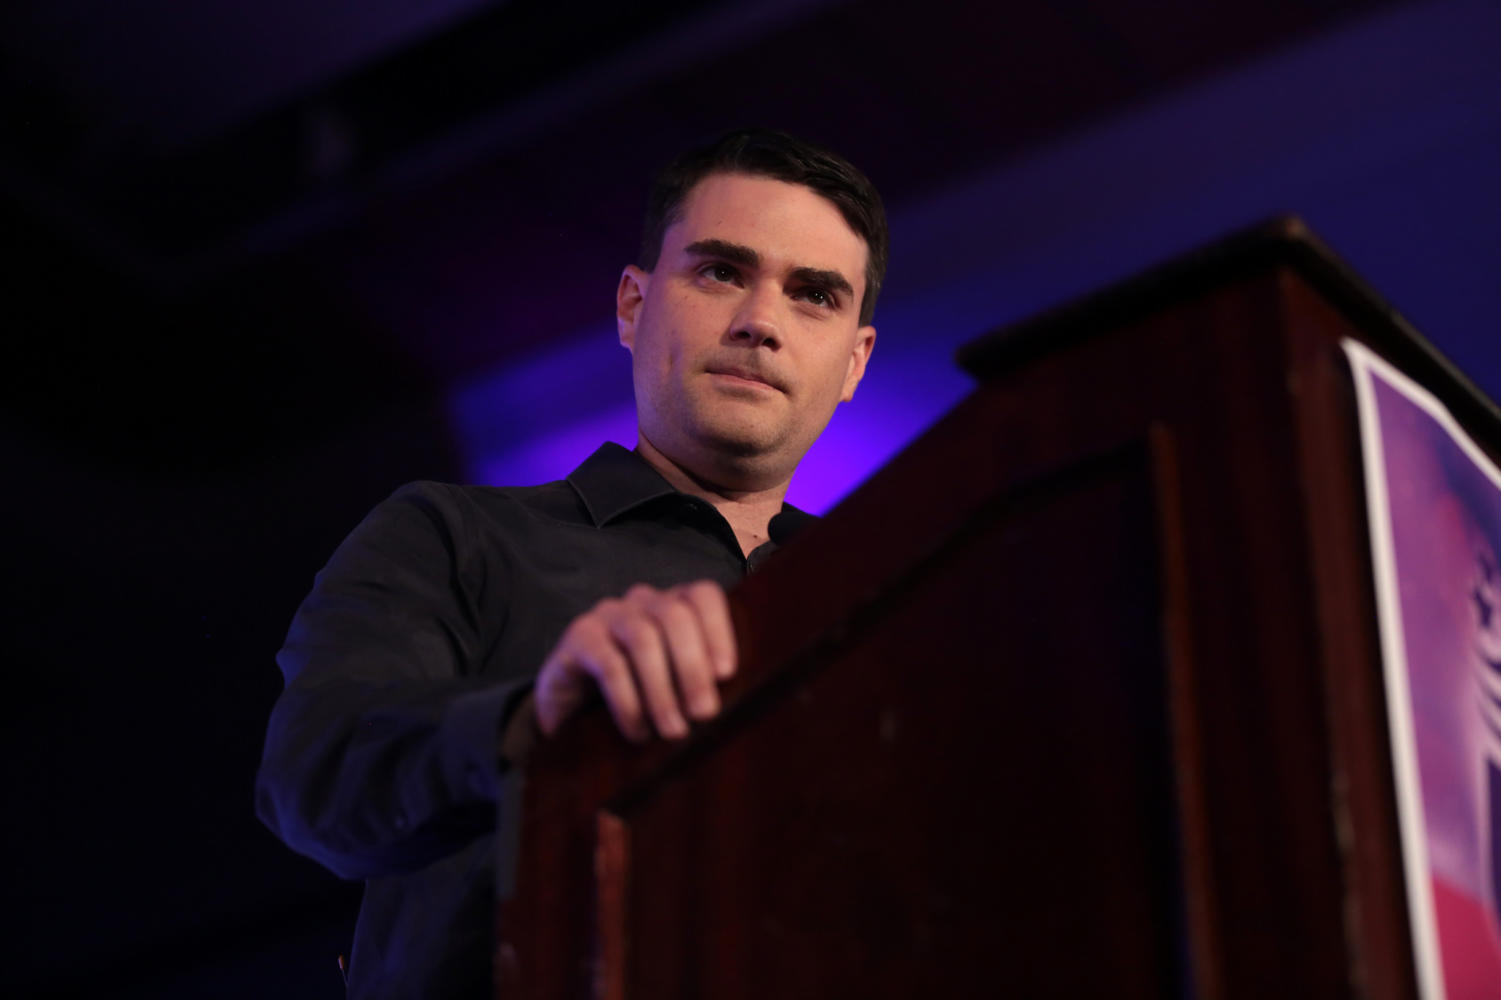 Ben Shapiro speaks at the 2018 Young Women's Leadership Summit hosted by Turning Point USA in Dallas.